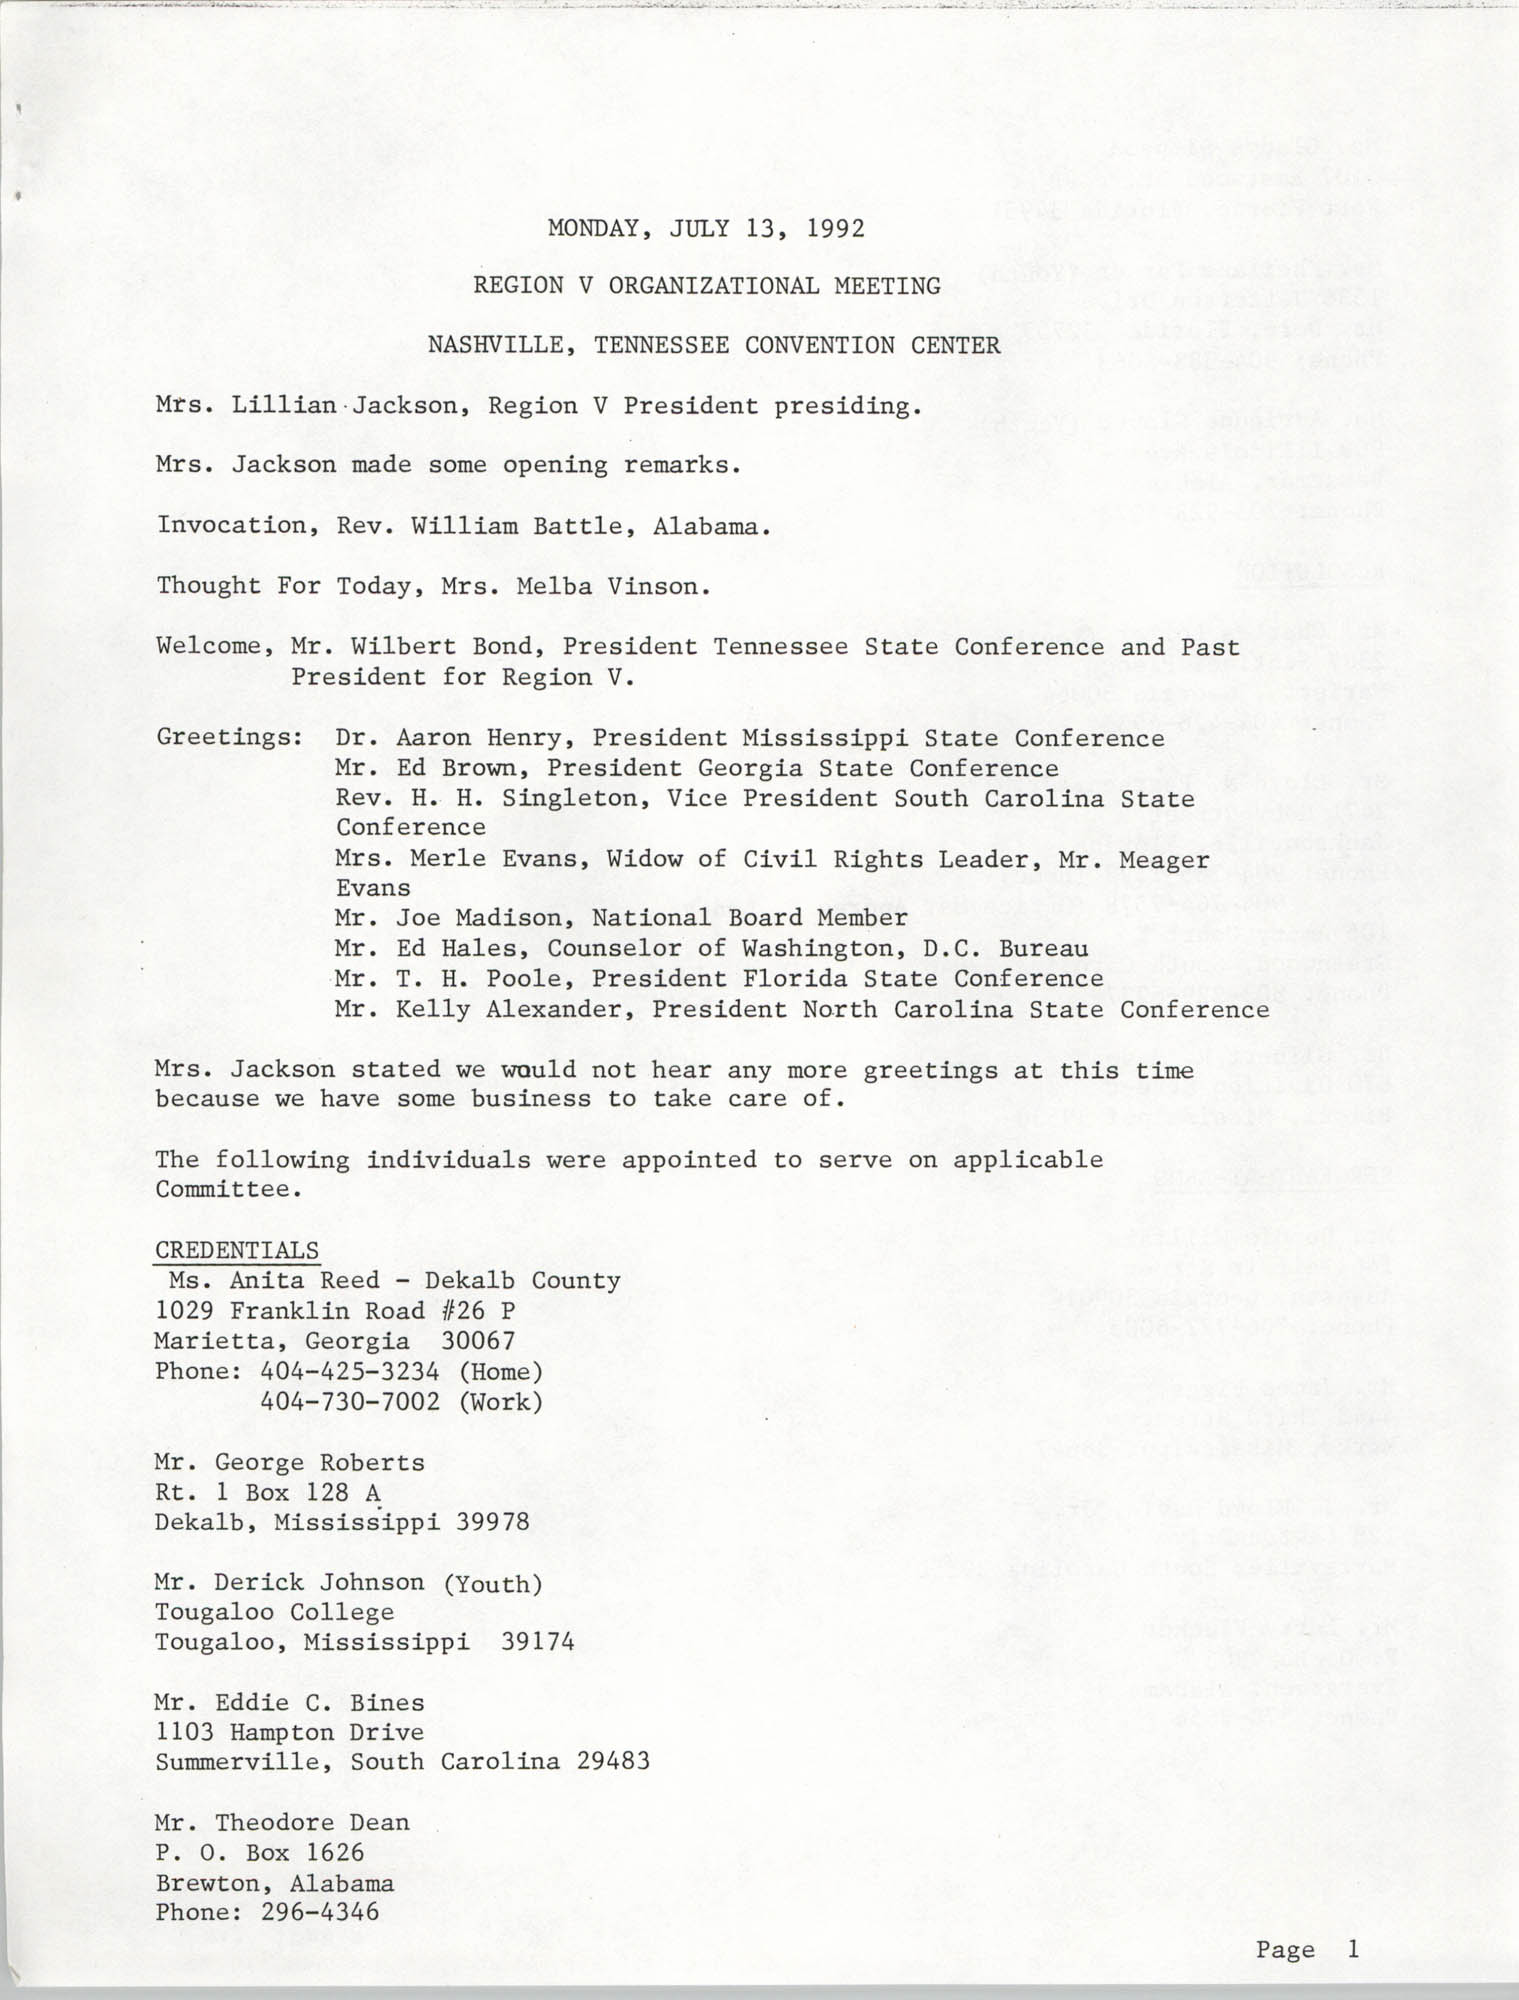 NAACP Region V Organizational Meeting, July 13, 1992